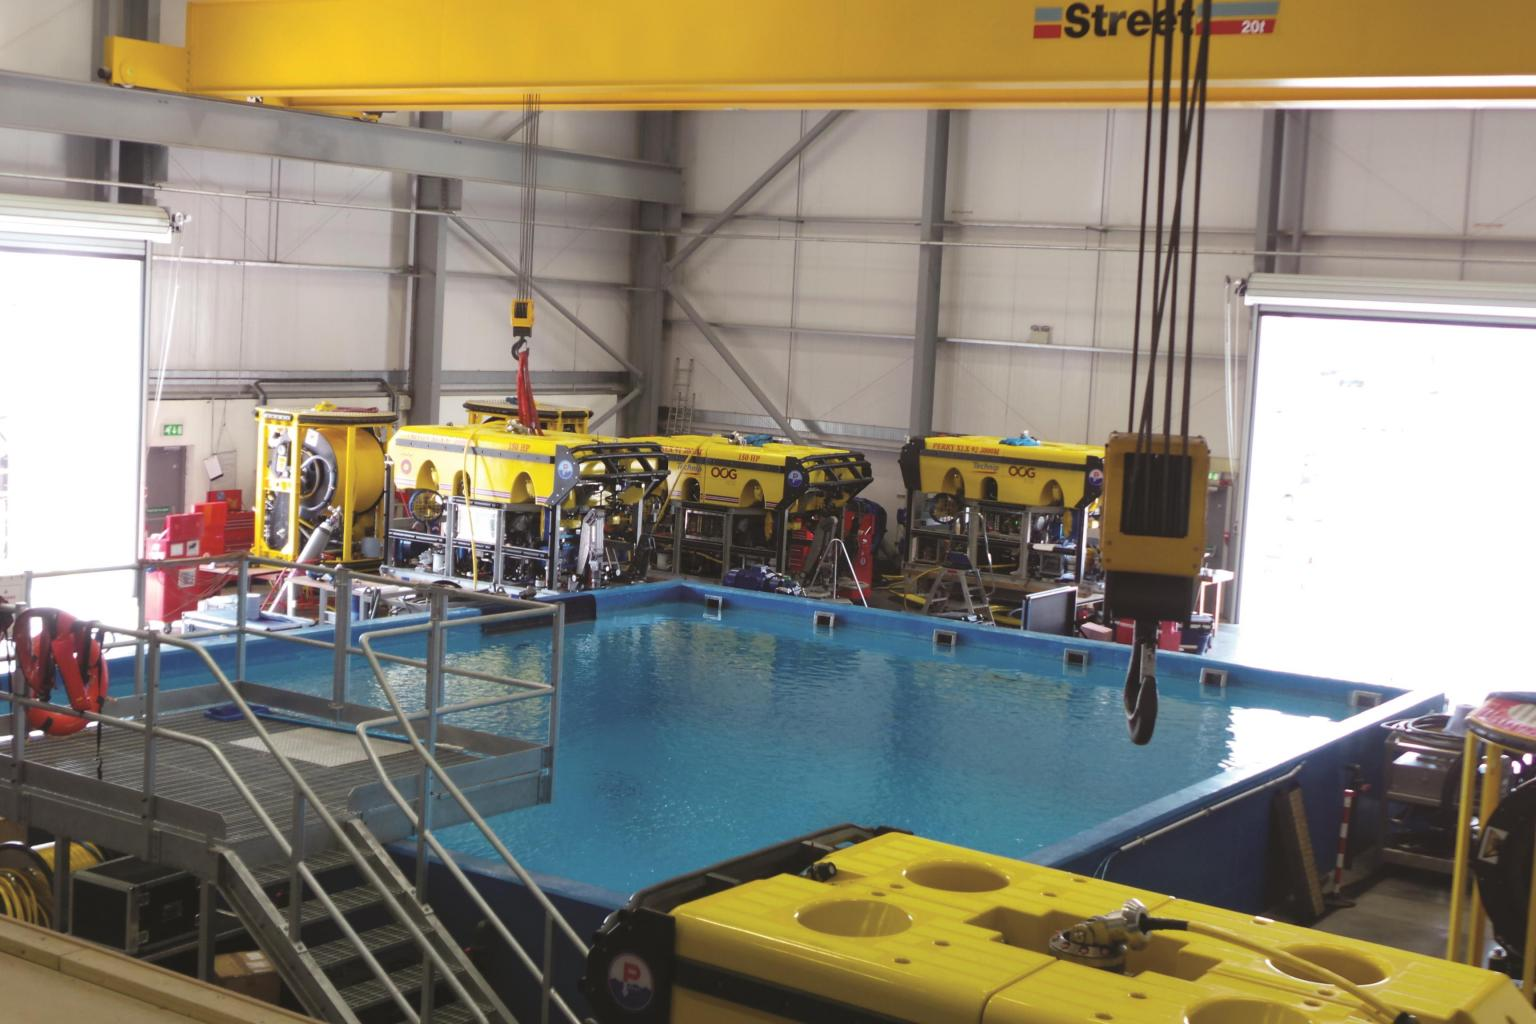 Forum launches one of its deep-water test tank facilities in Aberdeen